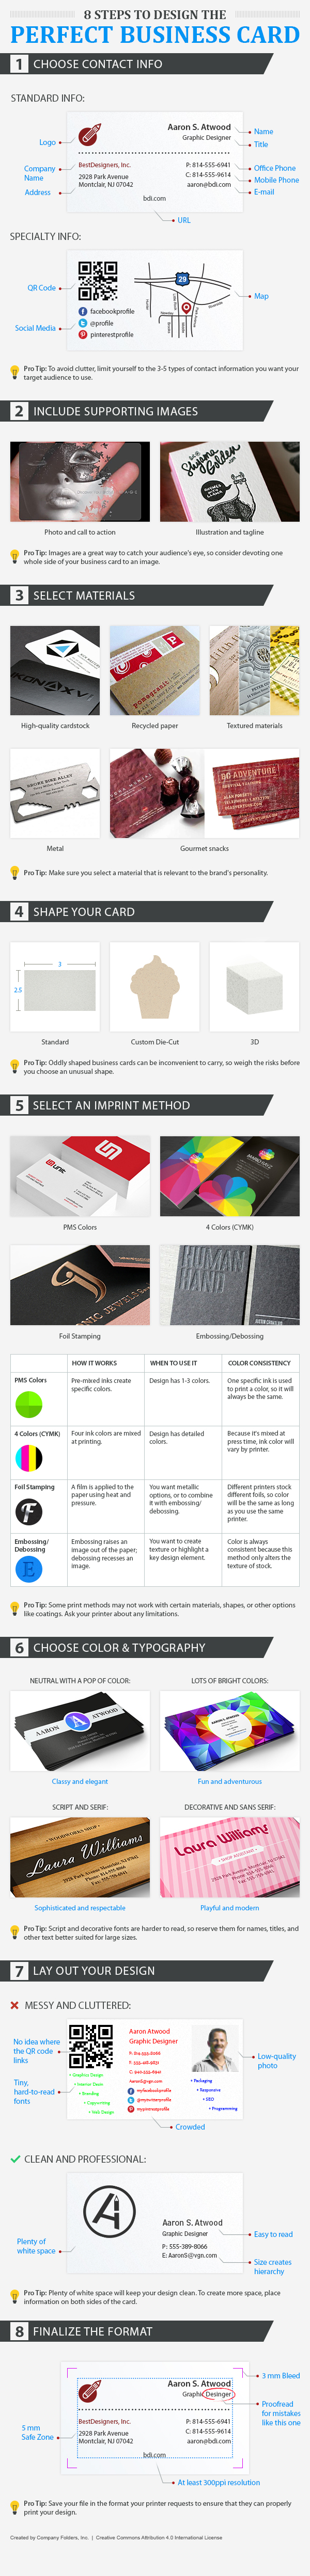 Business card design tips top ideas for designers in 2018 8 tips to design the perfect business card infographic colourmoves